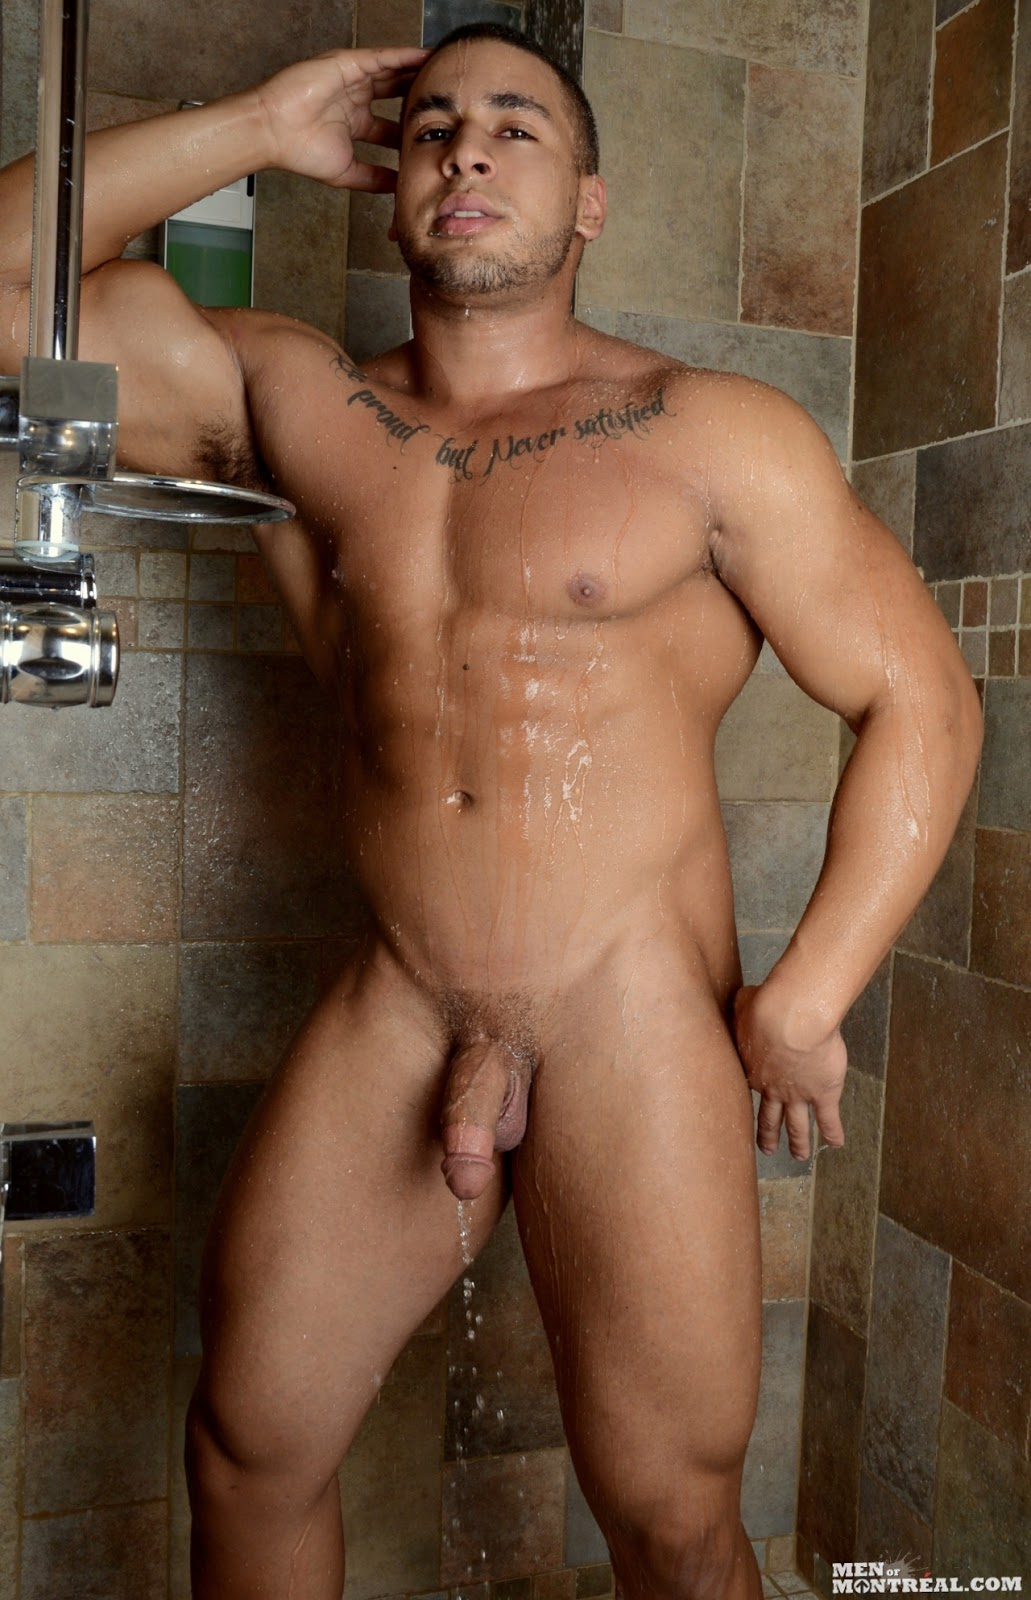 Damn gay men in shower nude